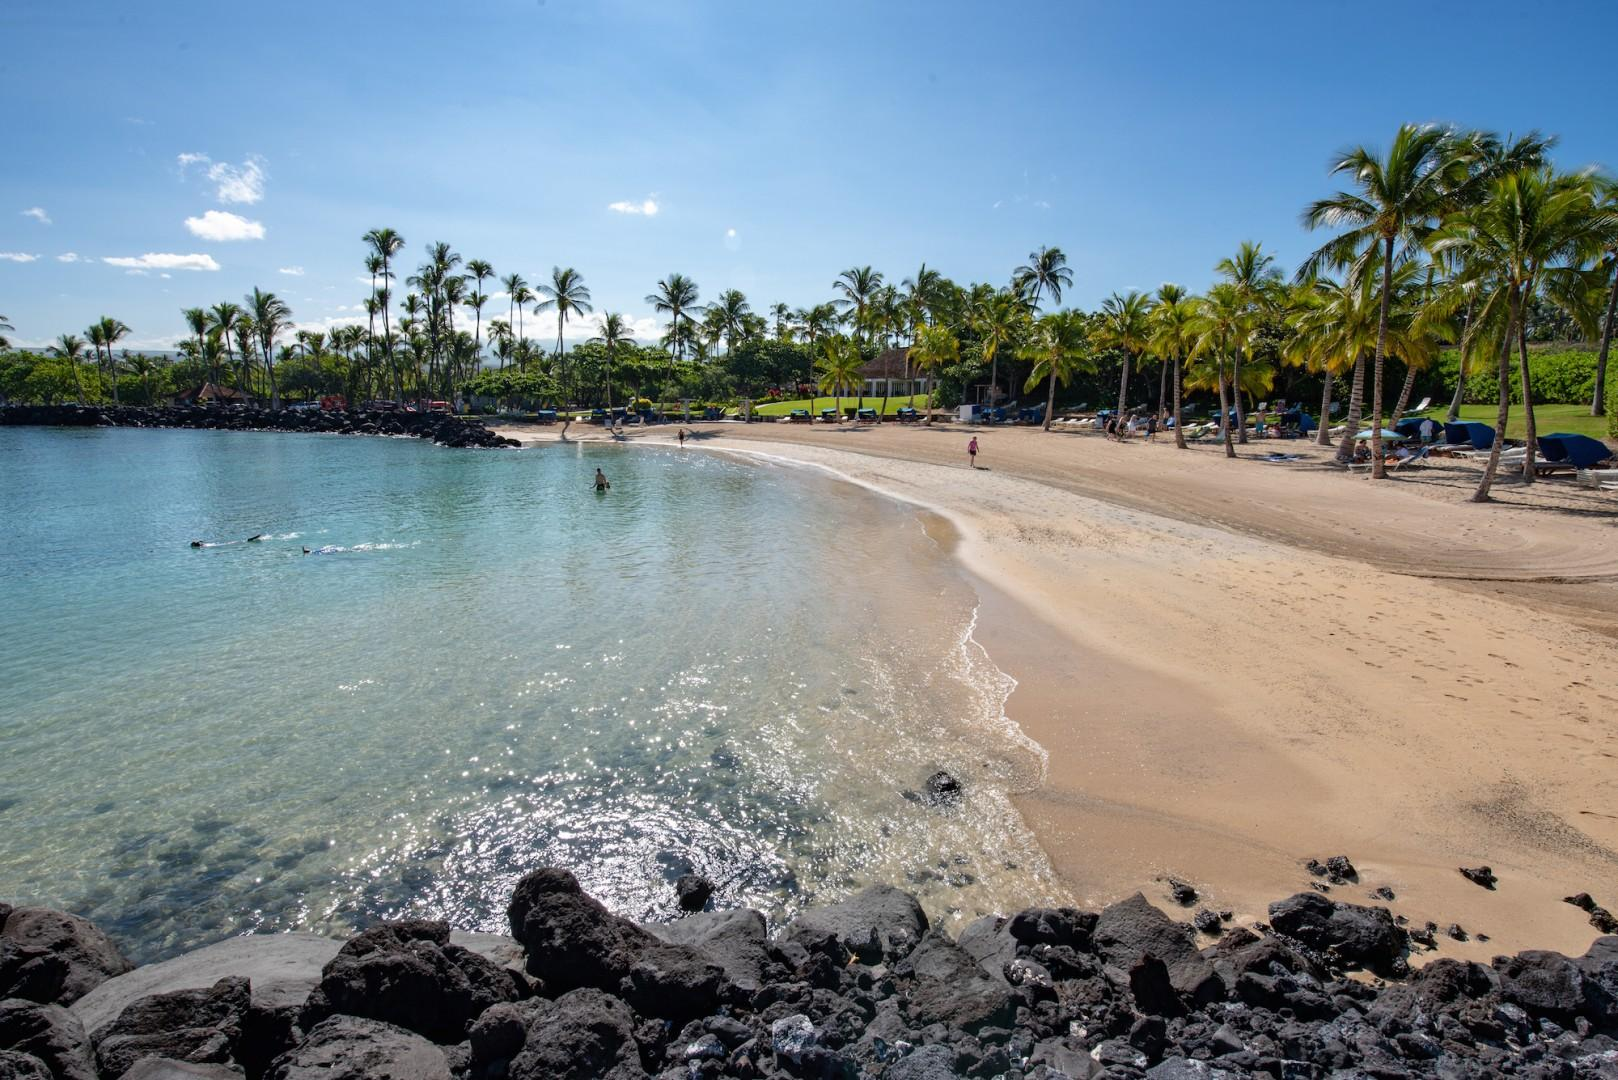 Enjoy access to a world-class white sand beach with beach lounge chairs, Napua Restaurant (open for lunch & dinner), excellent snorkeling and ocean gear rentals. A key card is included with your rental for entry and parking in the private parking area.